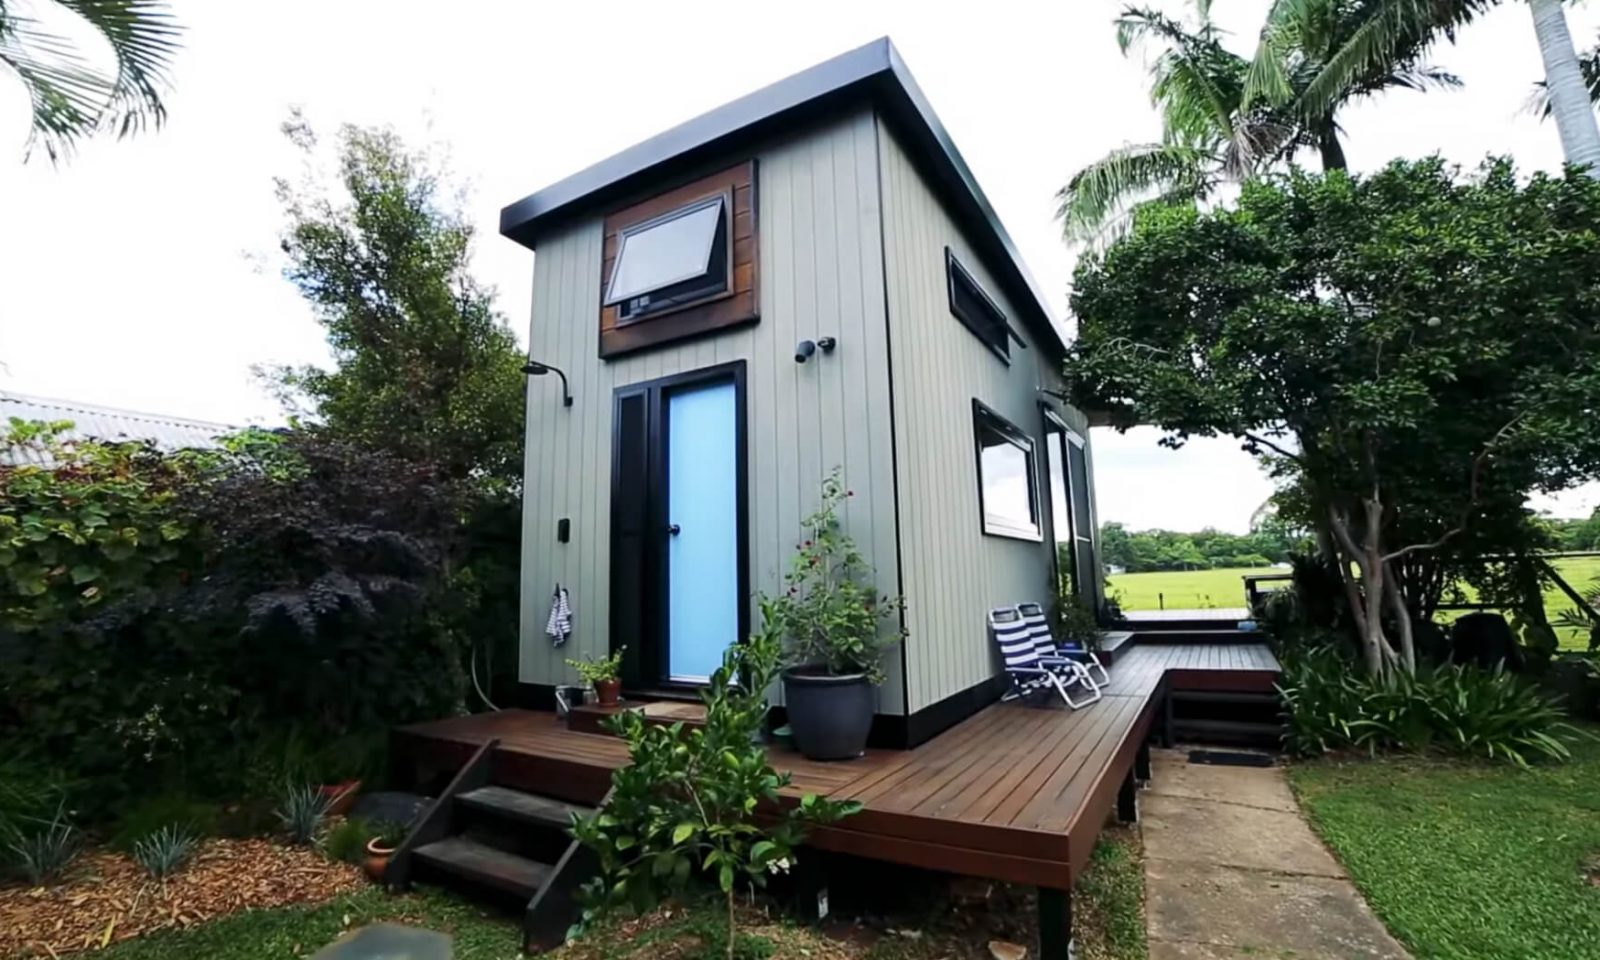 A zen tiny house in New Zealand